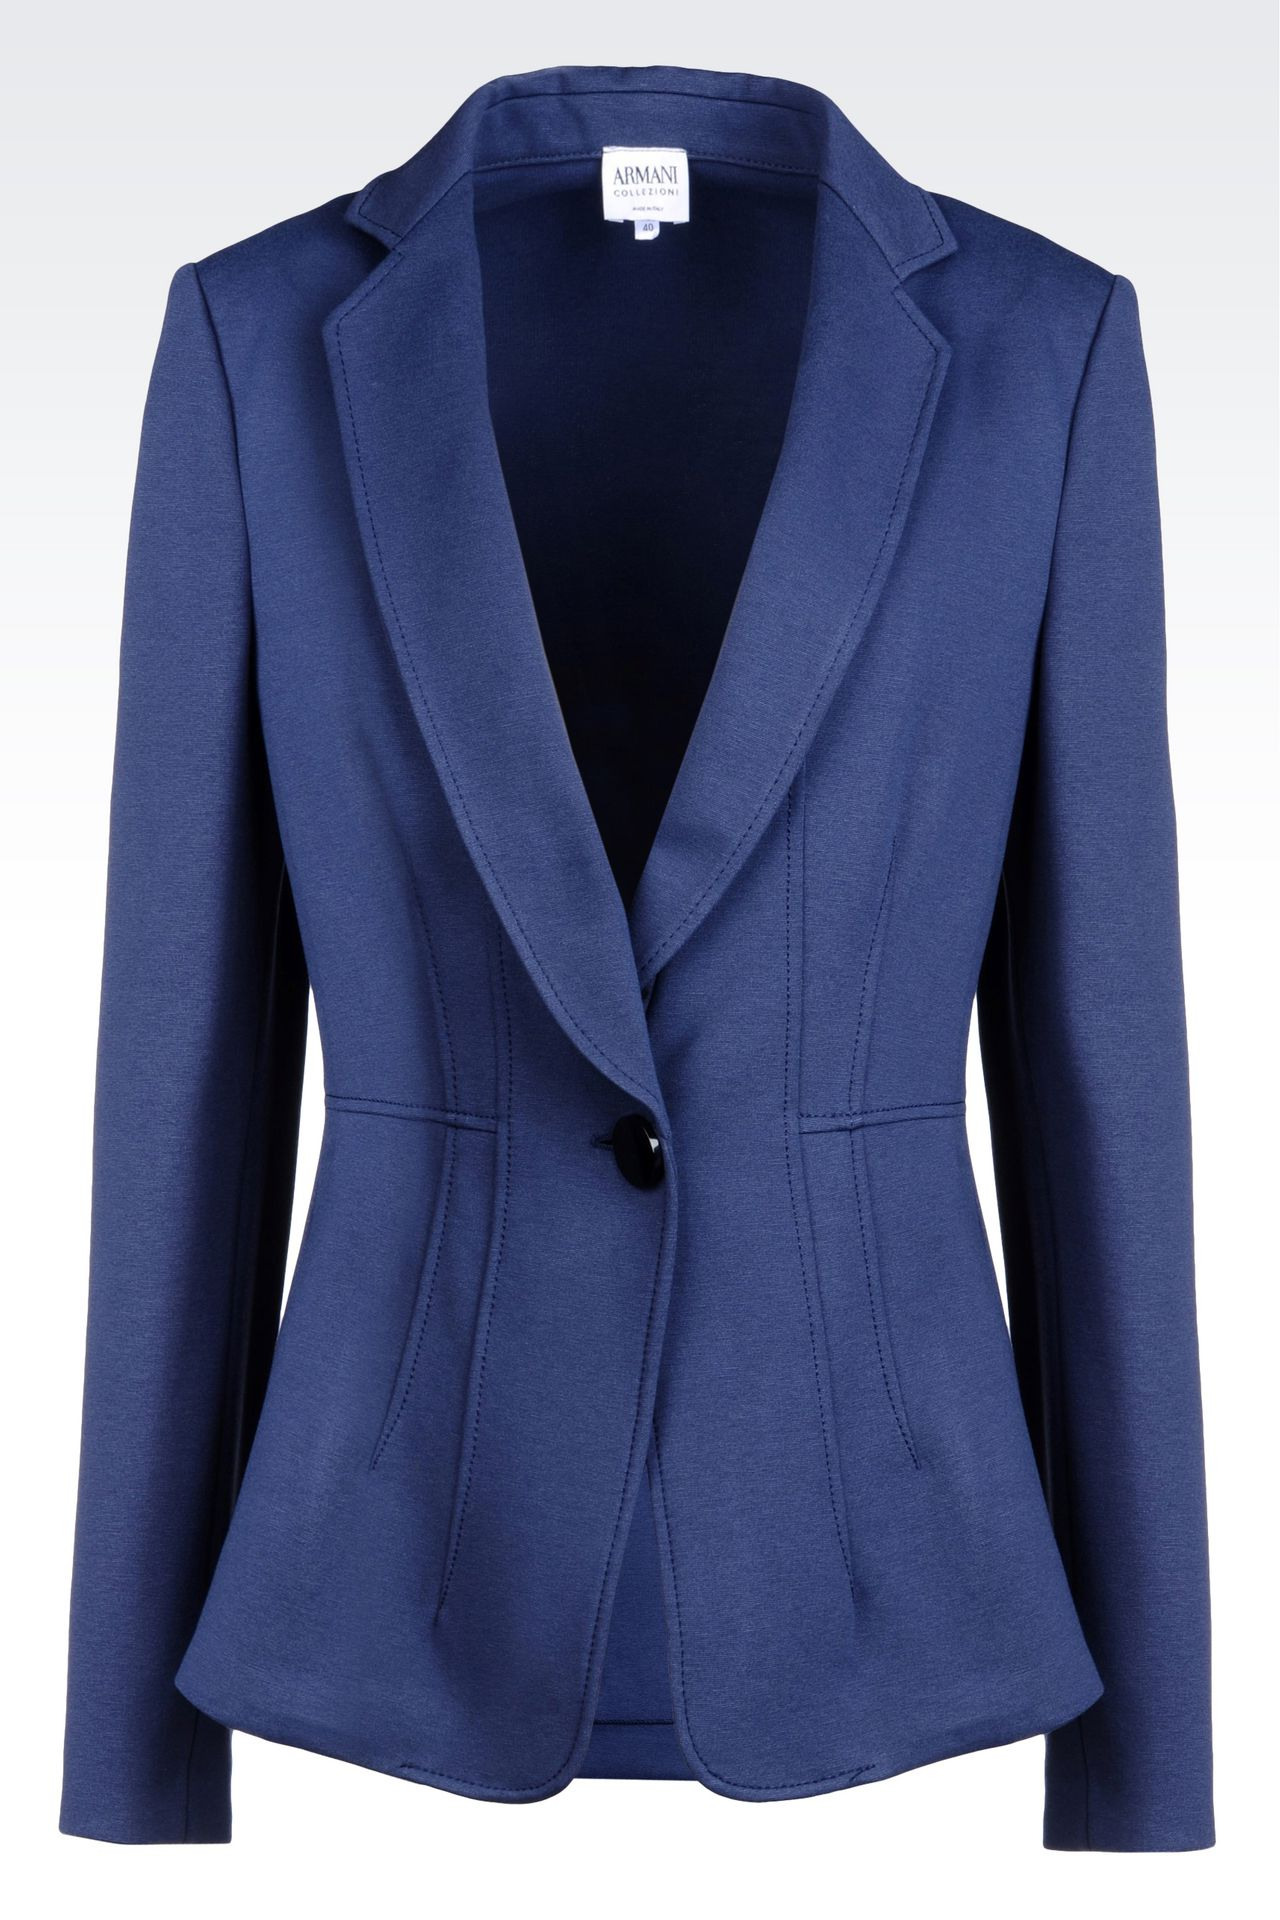 JACKET IN MILANO RIB: One button jackets Women by Armani - 0